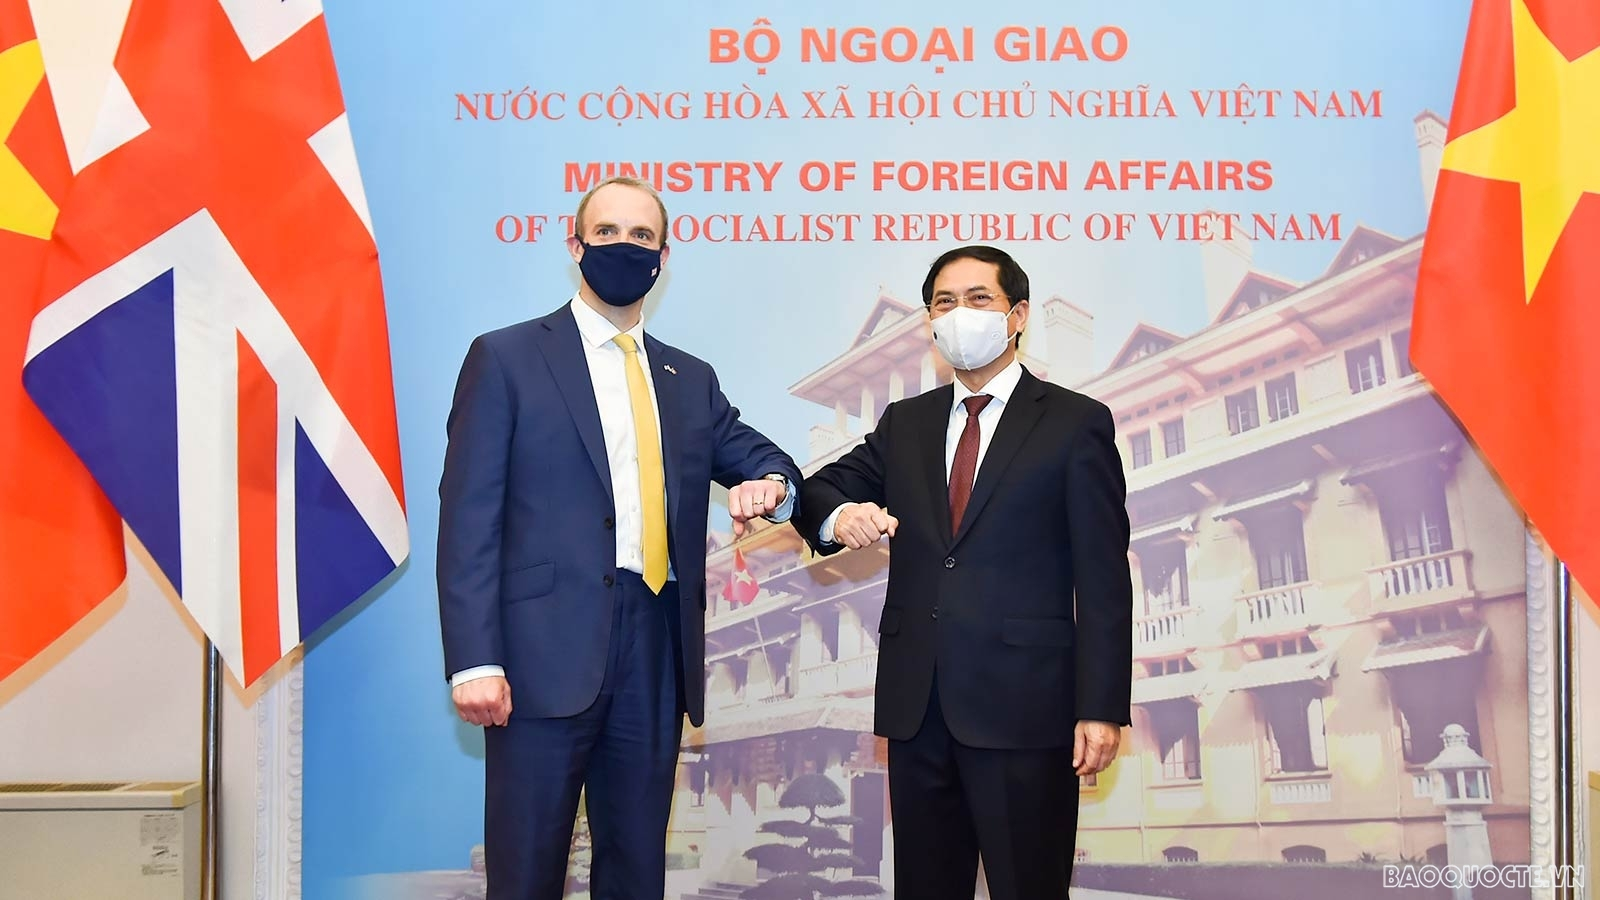 UK Foreign Secretary visits Vietnam for the second time in nine months